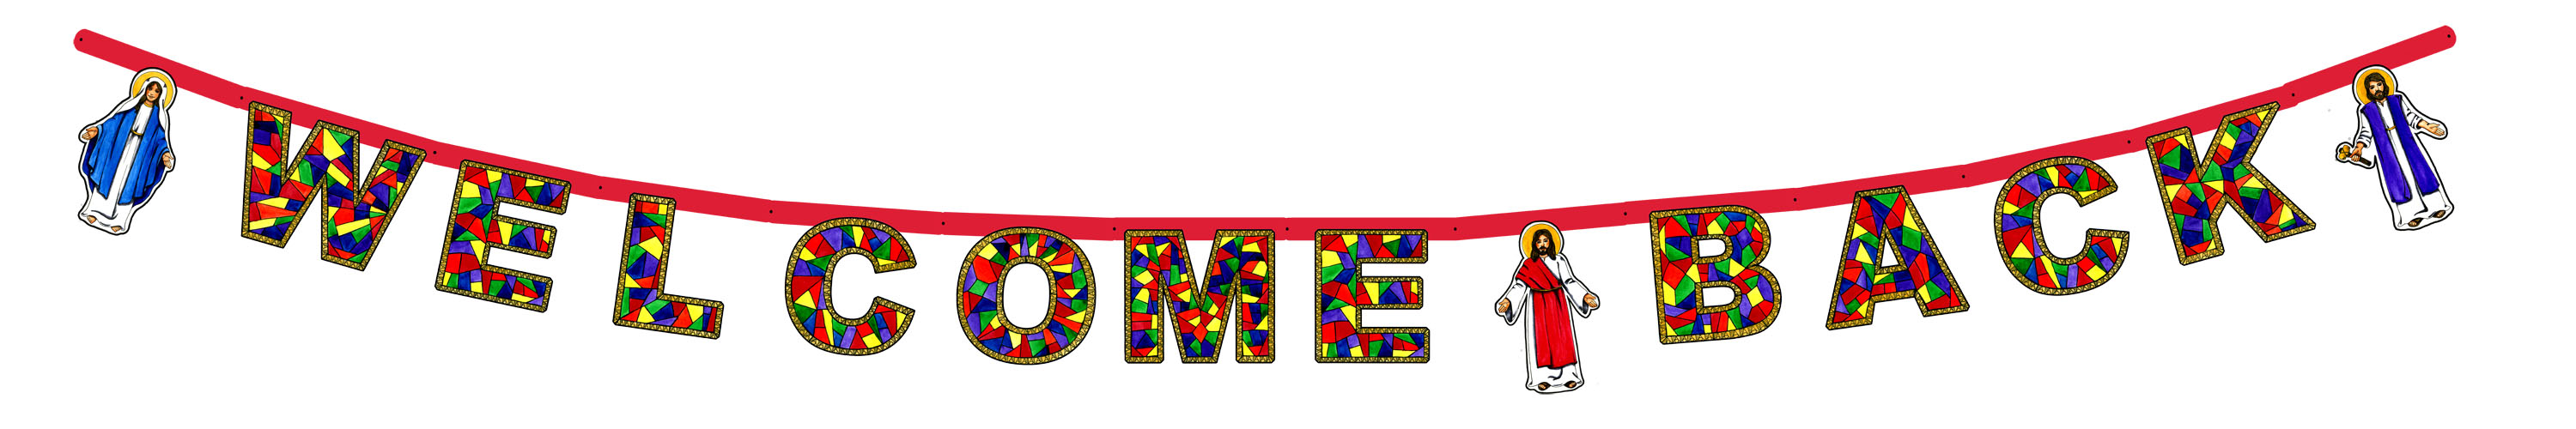 3000x500 Image Of Free Welcome Clip Art 9 Welcome To Preschool Clipart